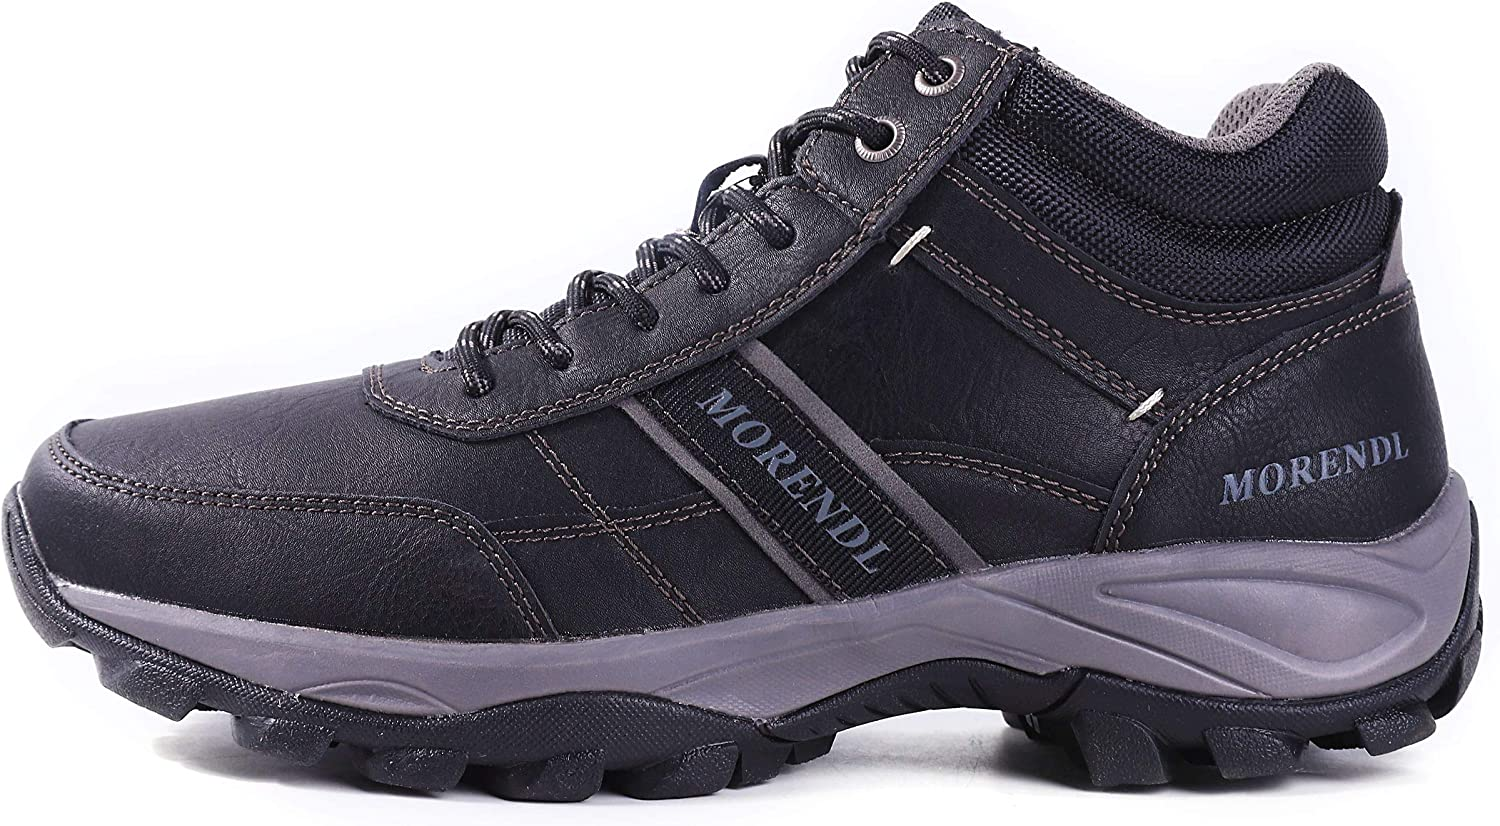 MORENDL Men /'s Outdoor Hiking Trekking Climbing Lightweight Casual Walking Anti Slip Sports Footwear